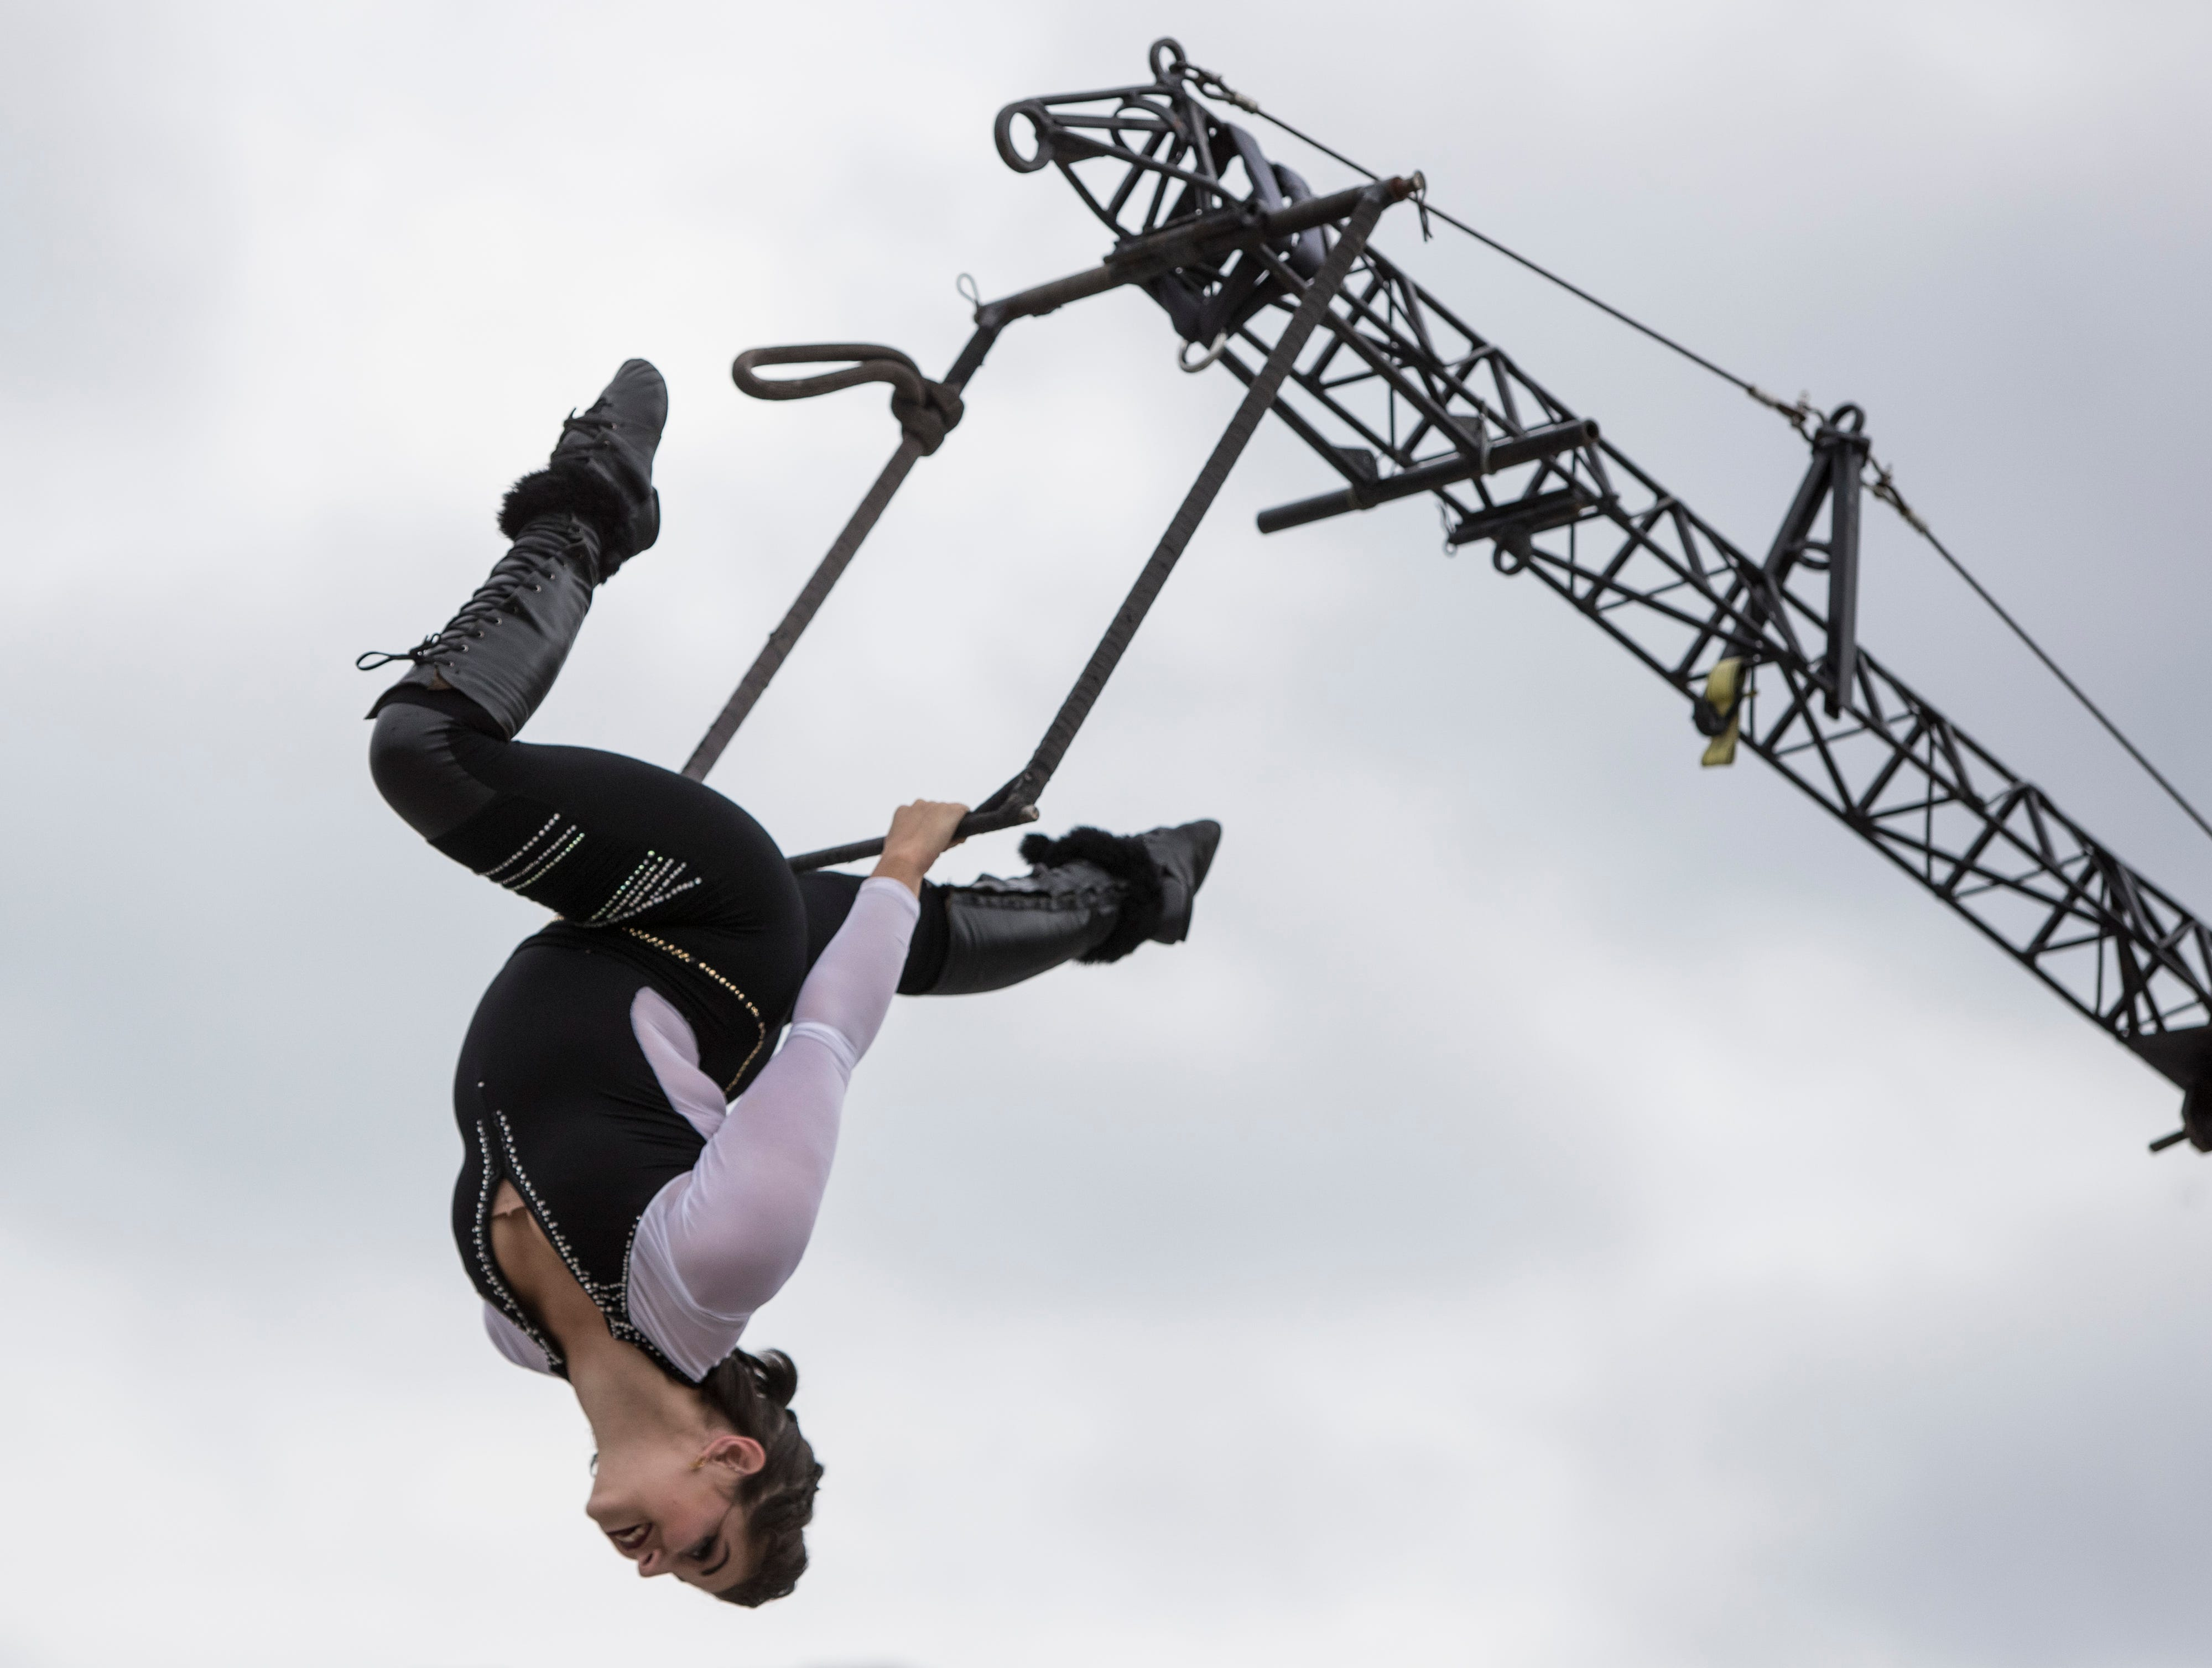 Ivory Young of the Motor Maniacs show performed a moving trapeze act while being spun from a motorbike at the Kentucky State Fair. Aug. 17, 2018.